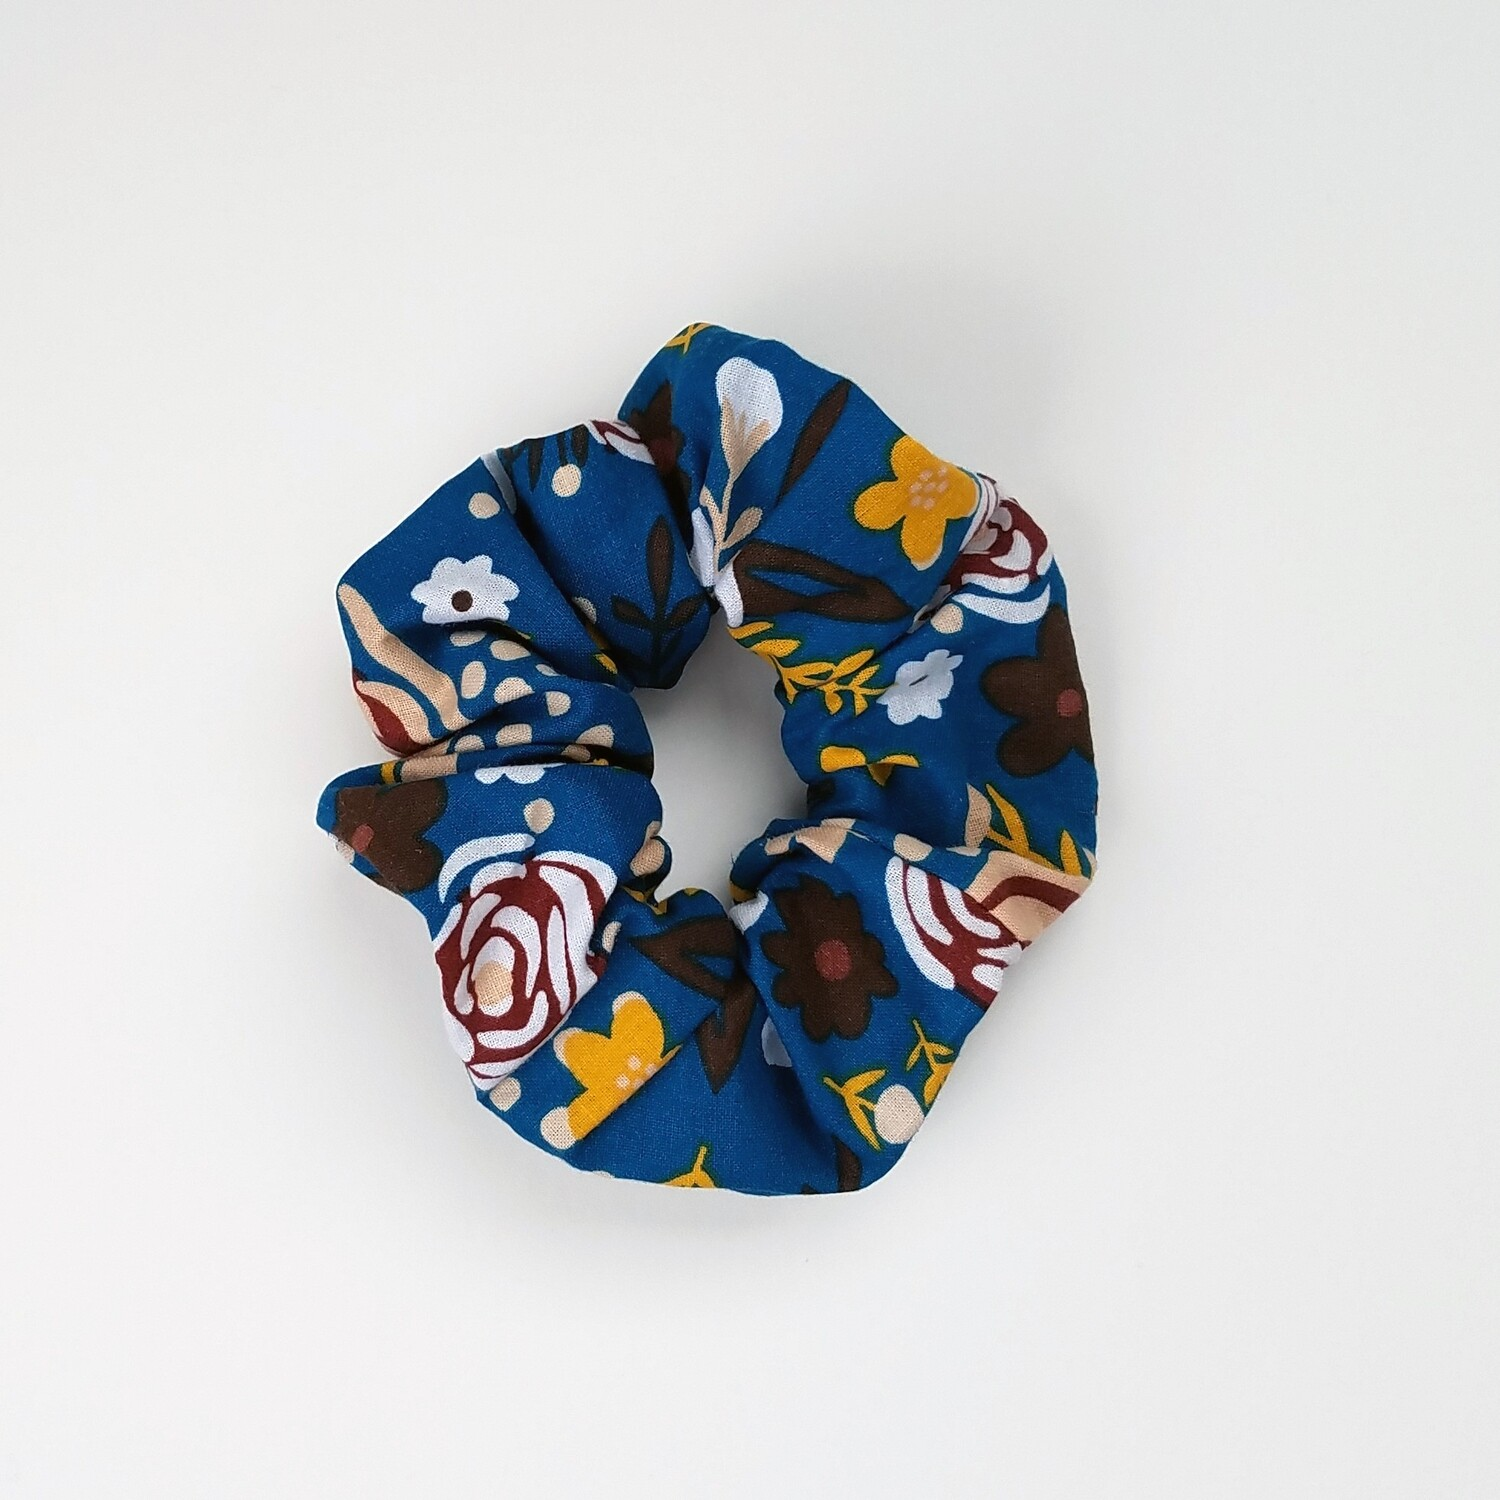 Sunland Scrunchie - Cotton - Blue Floral